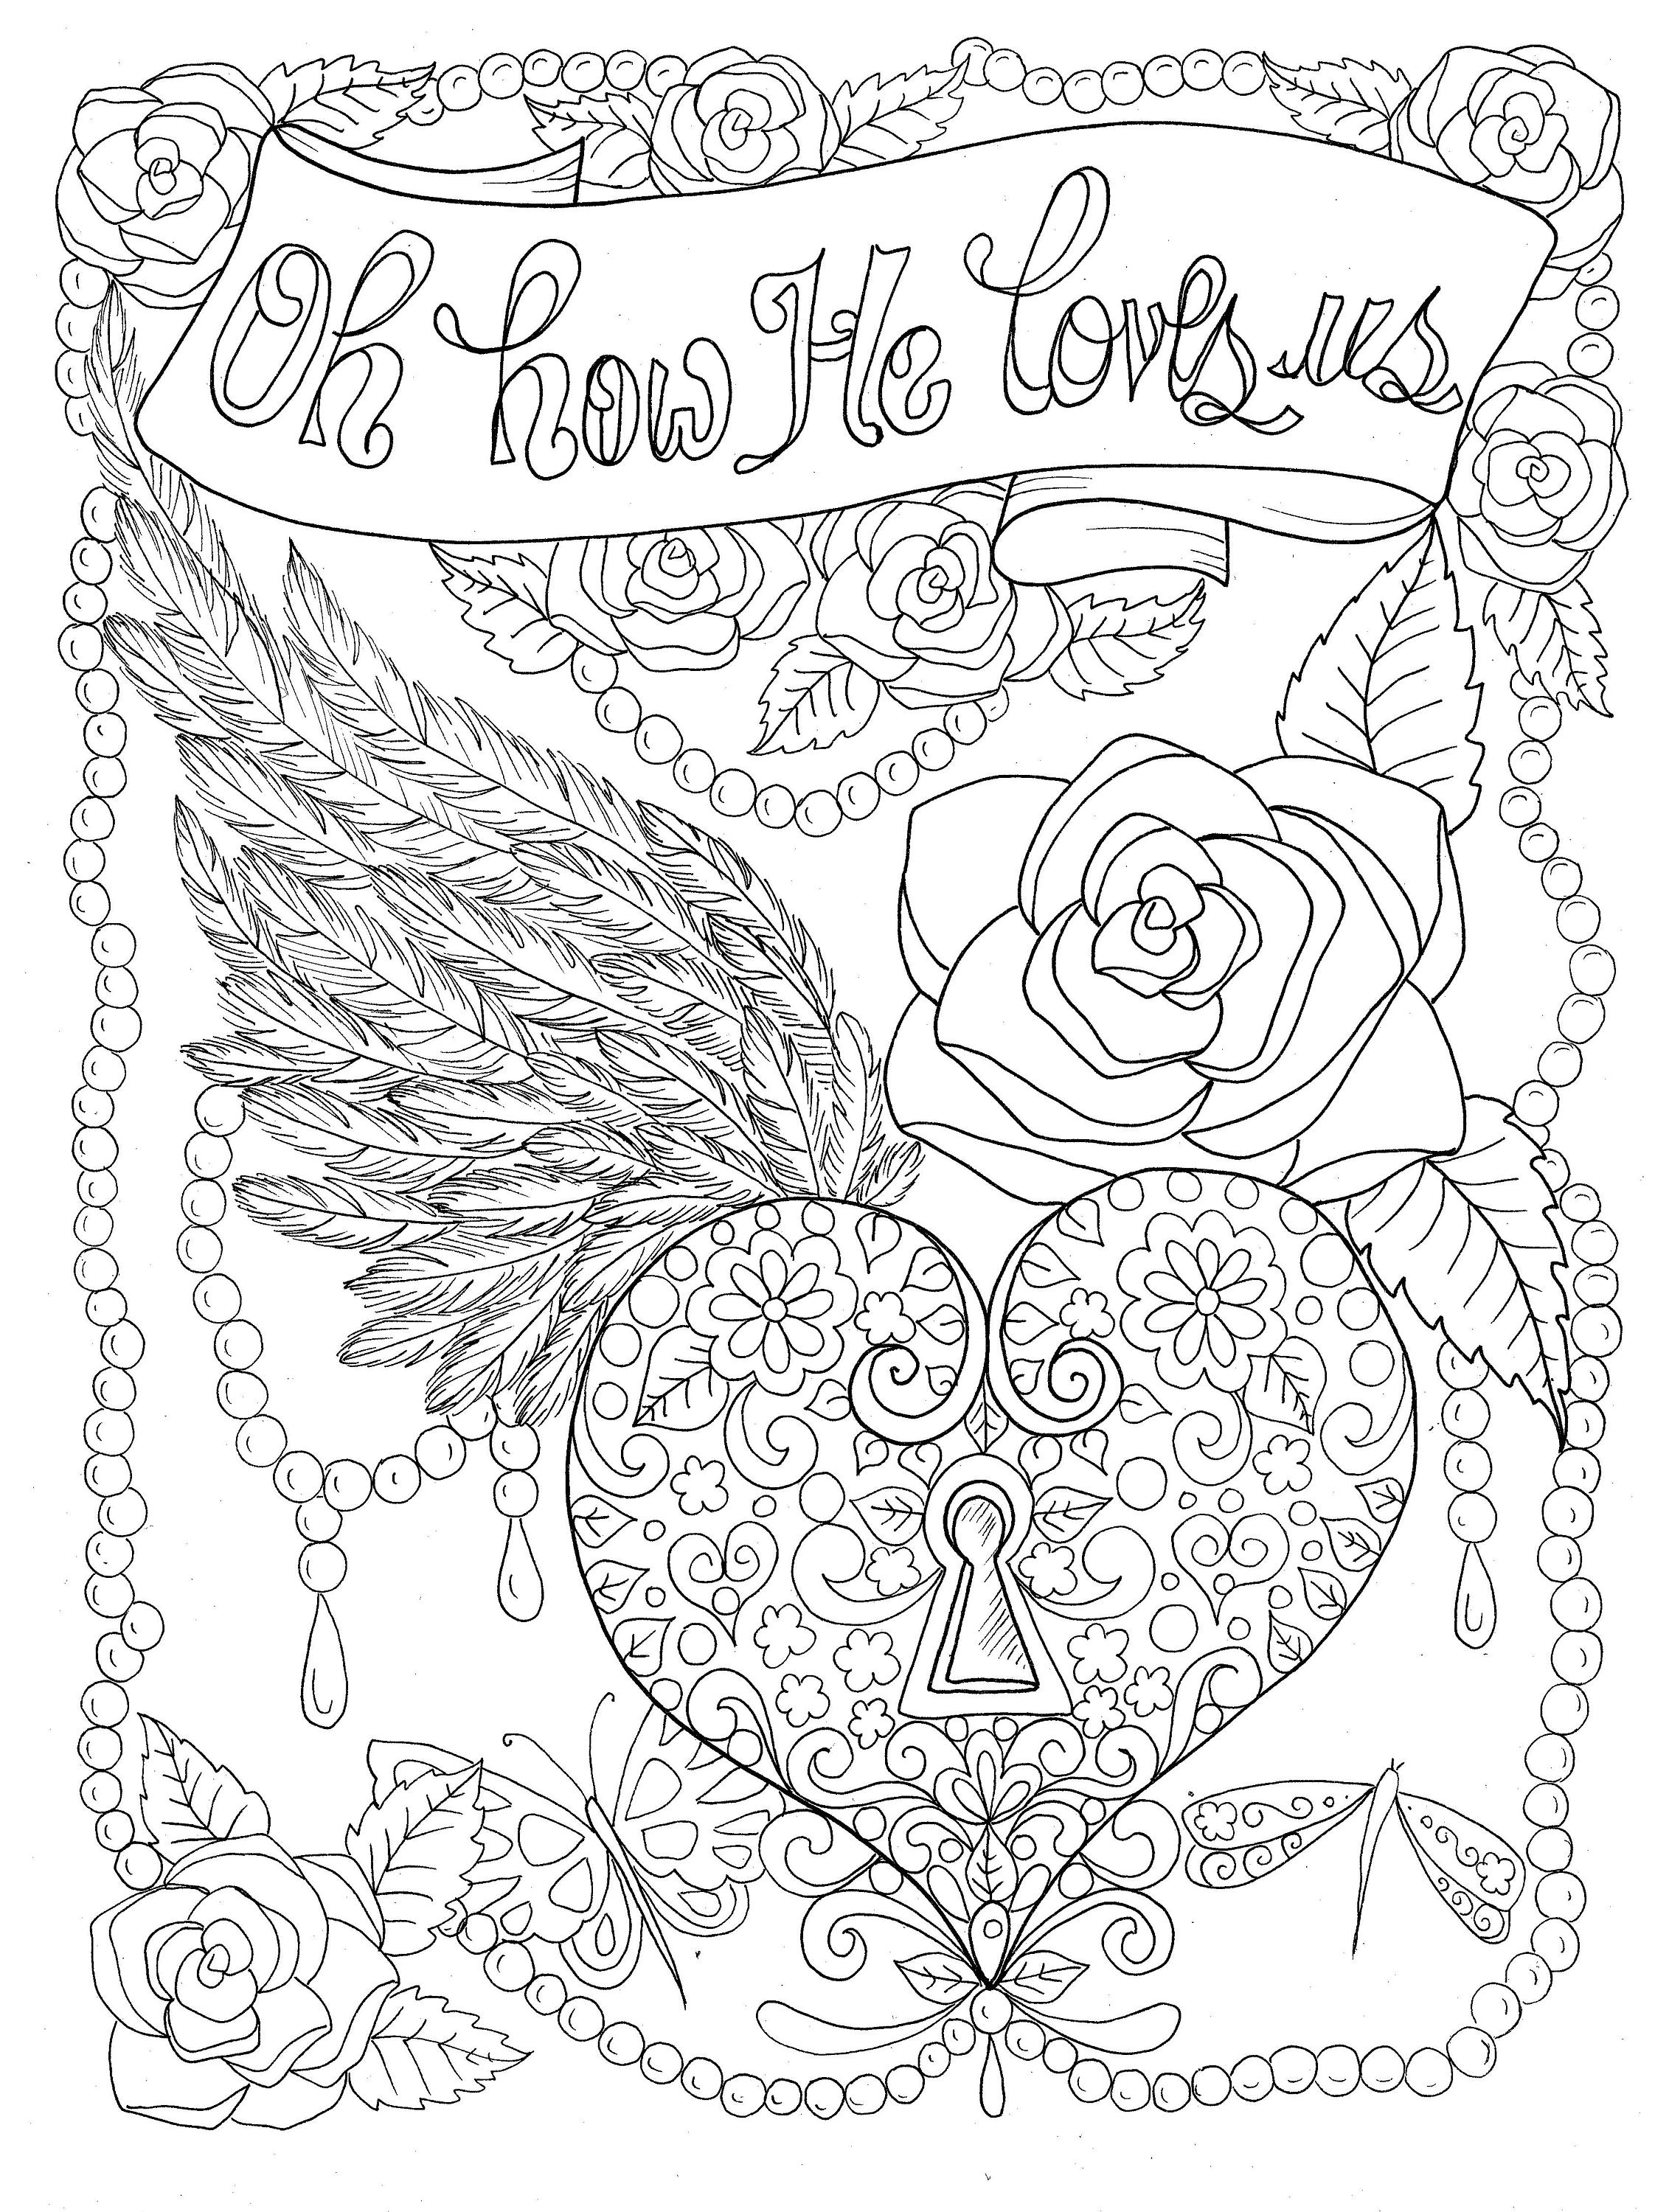 free christian coloring sheets christian adult coloring pages at getcoloringscom free free christian coloring sheets